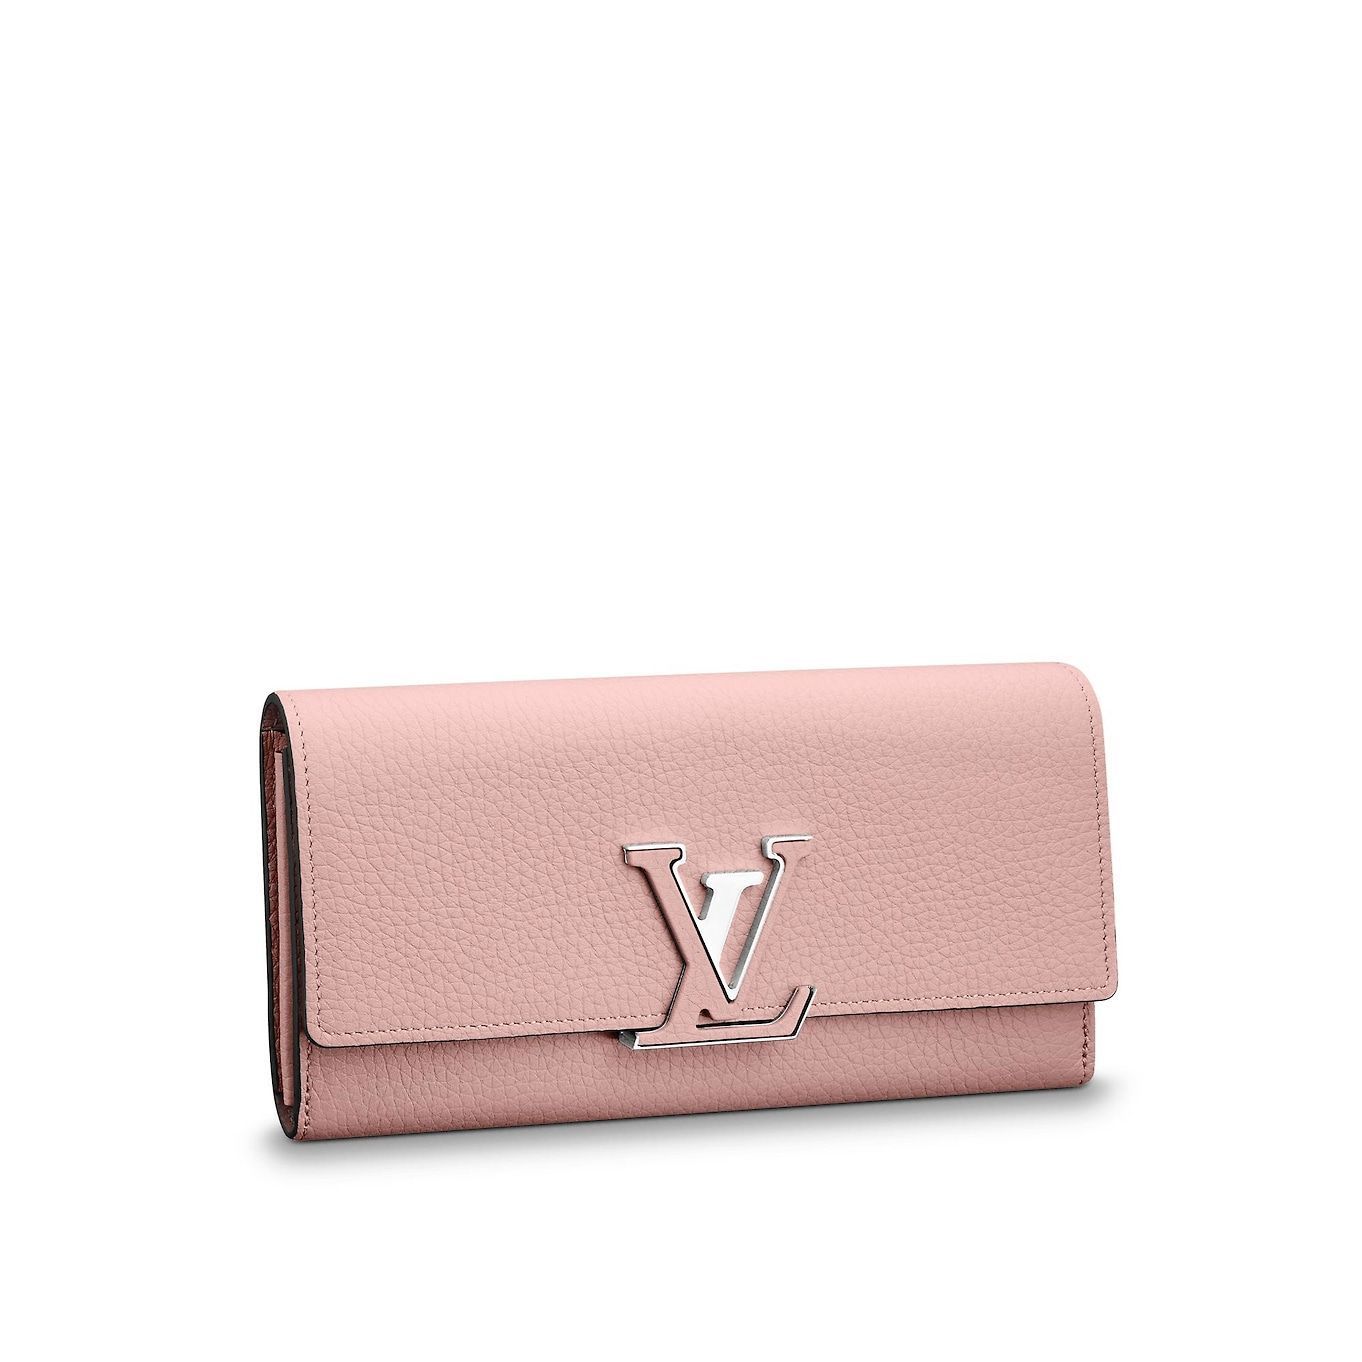 db161b3355 View 1 - Women - Capucines Wallet Taurillon Leather Women Small ...